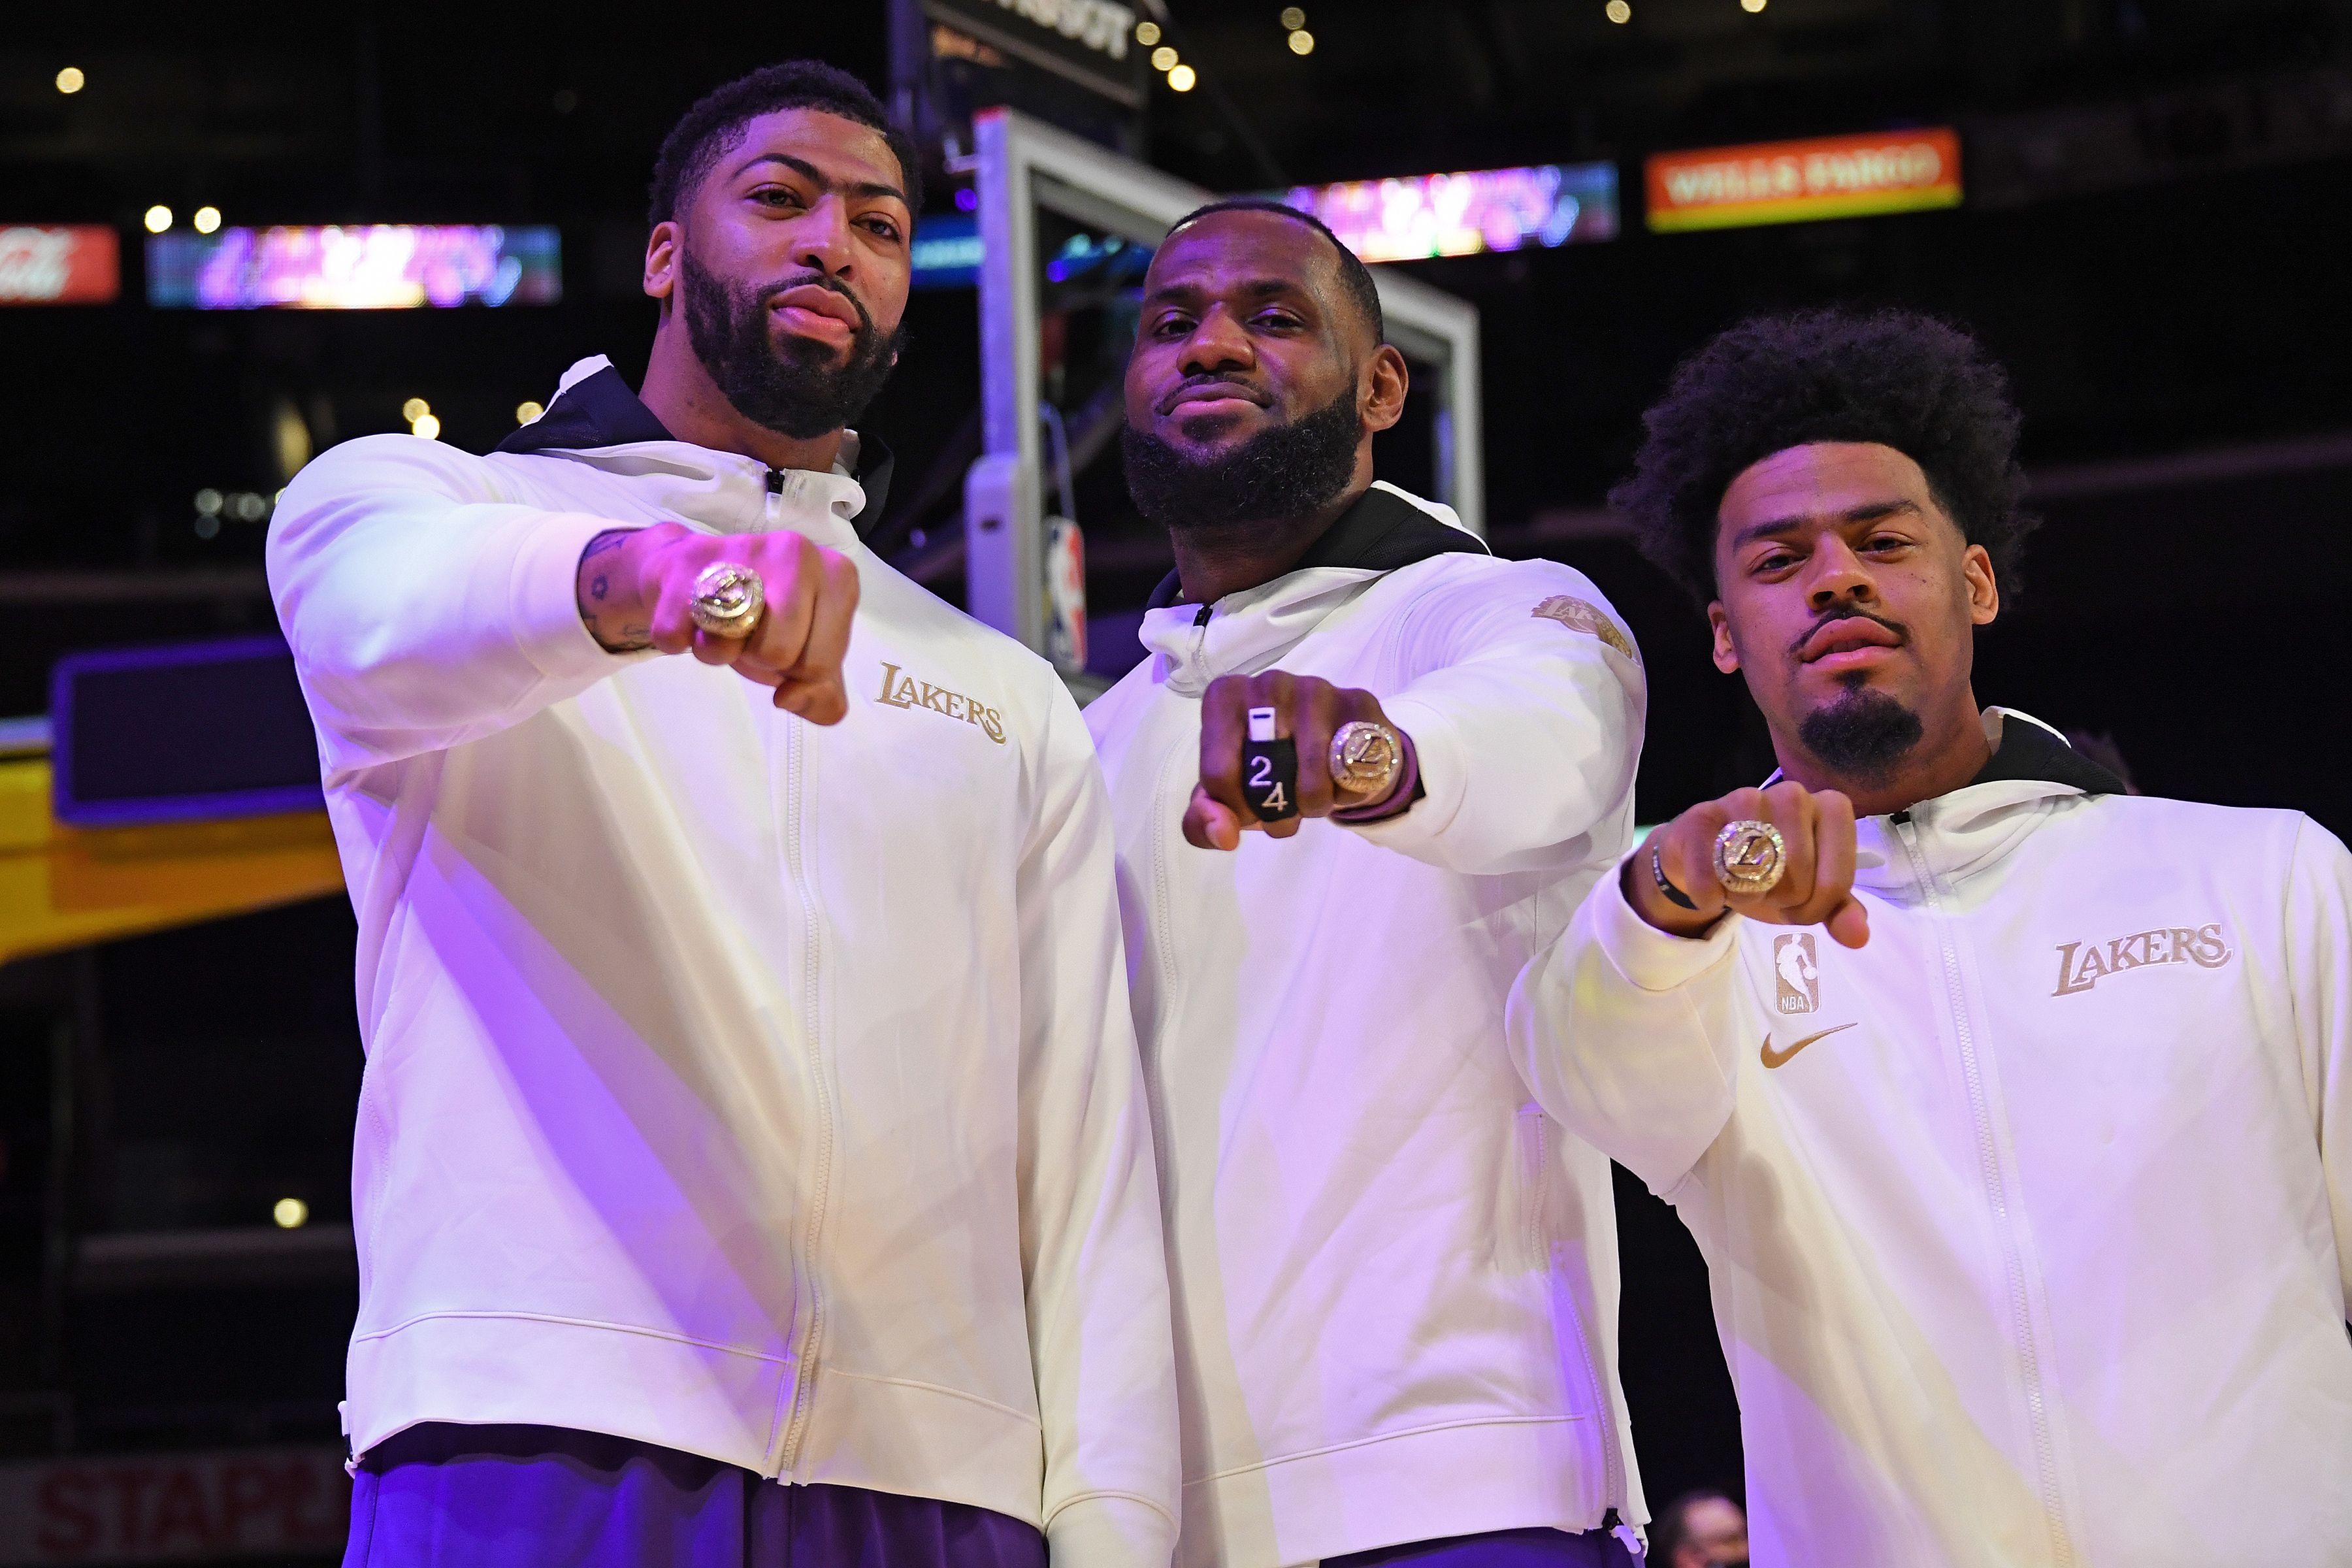 Lakers Championship Rings Pay Tribute To Bryant With Black